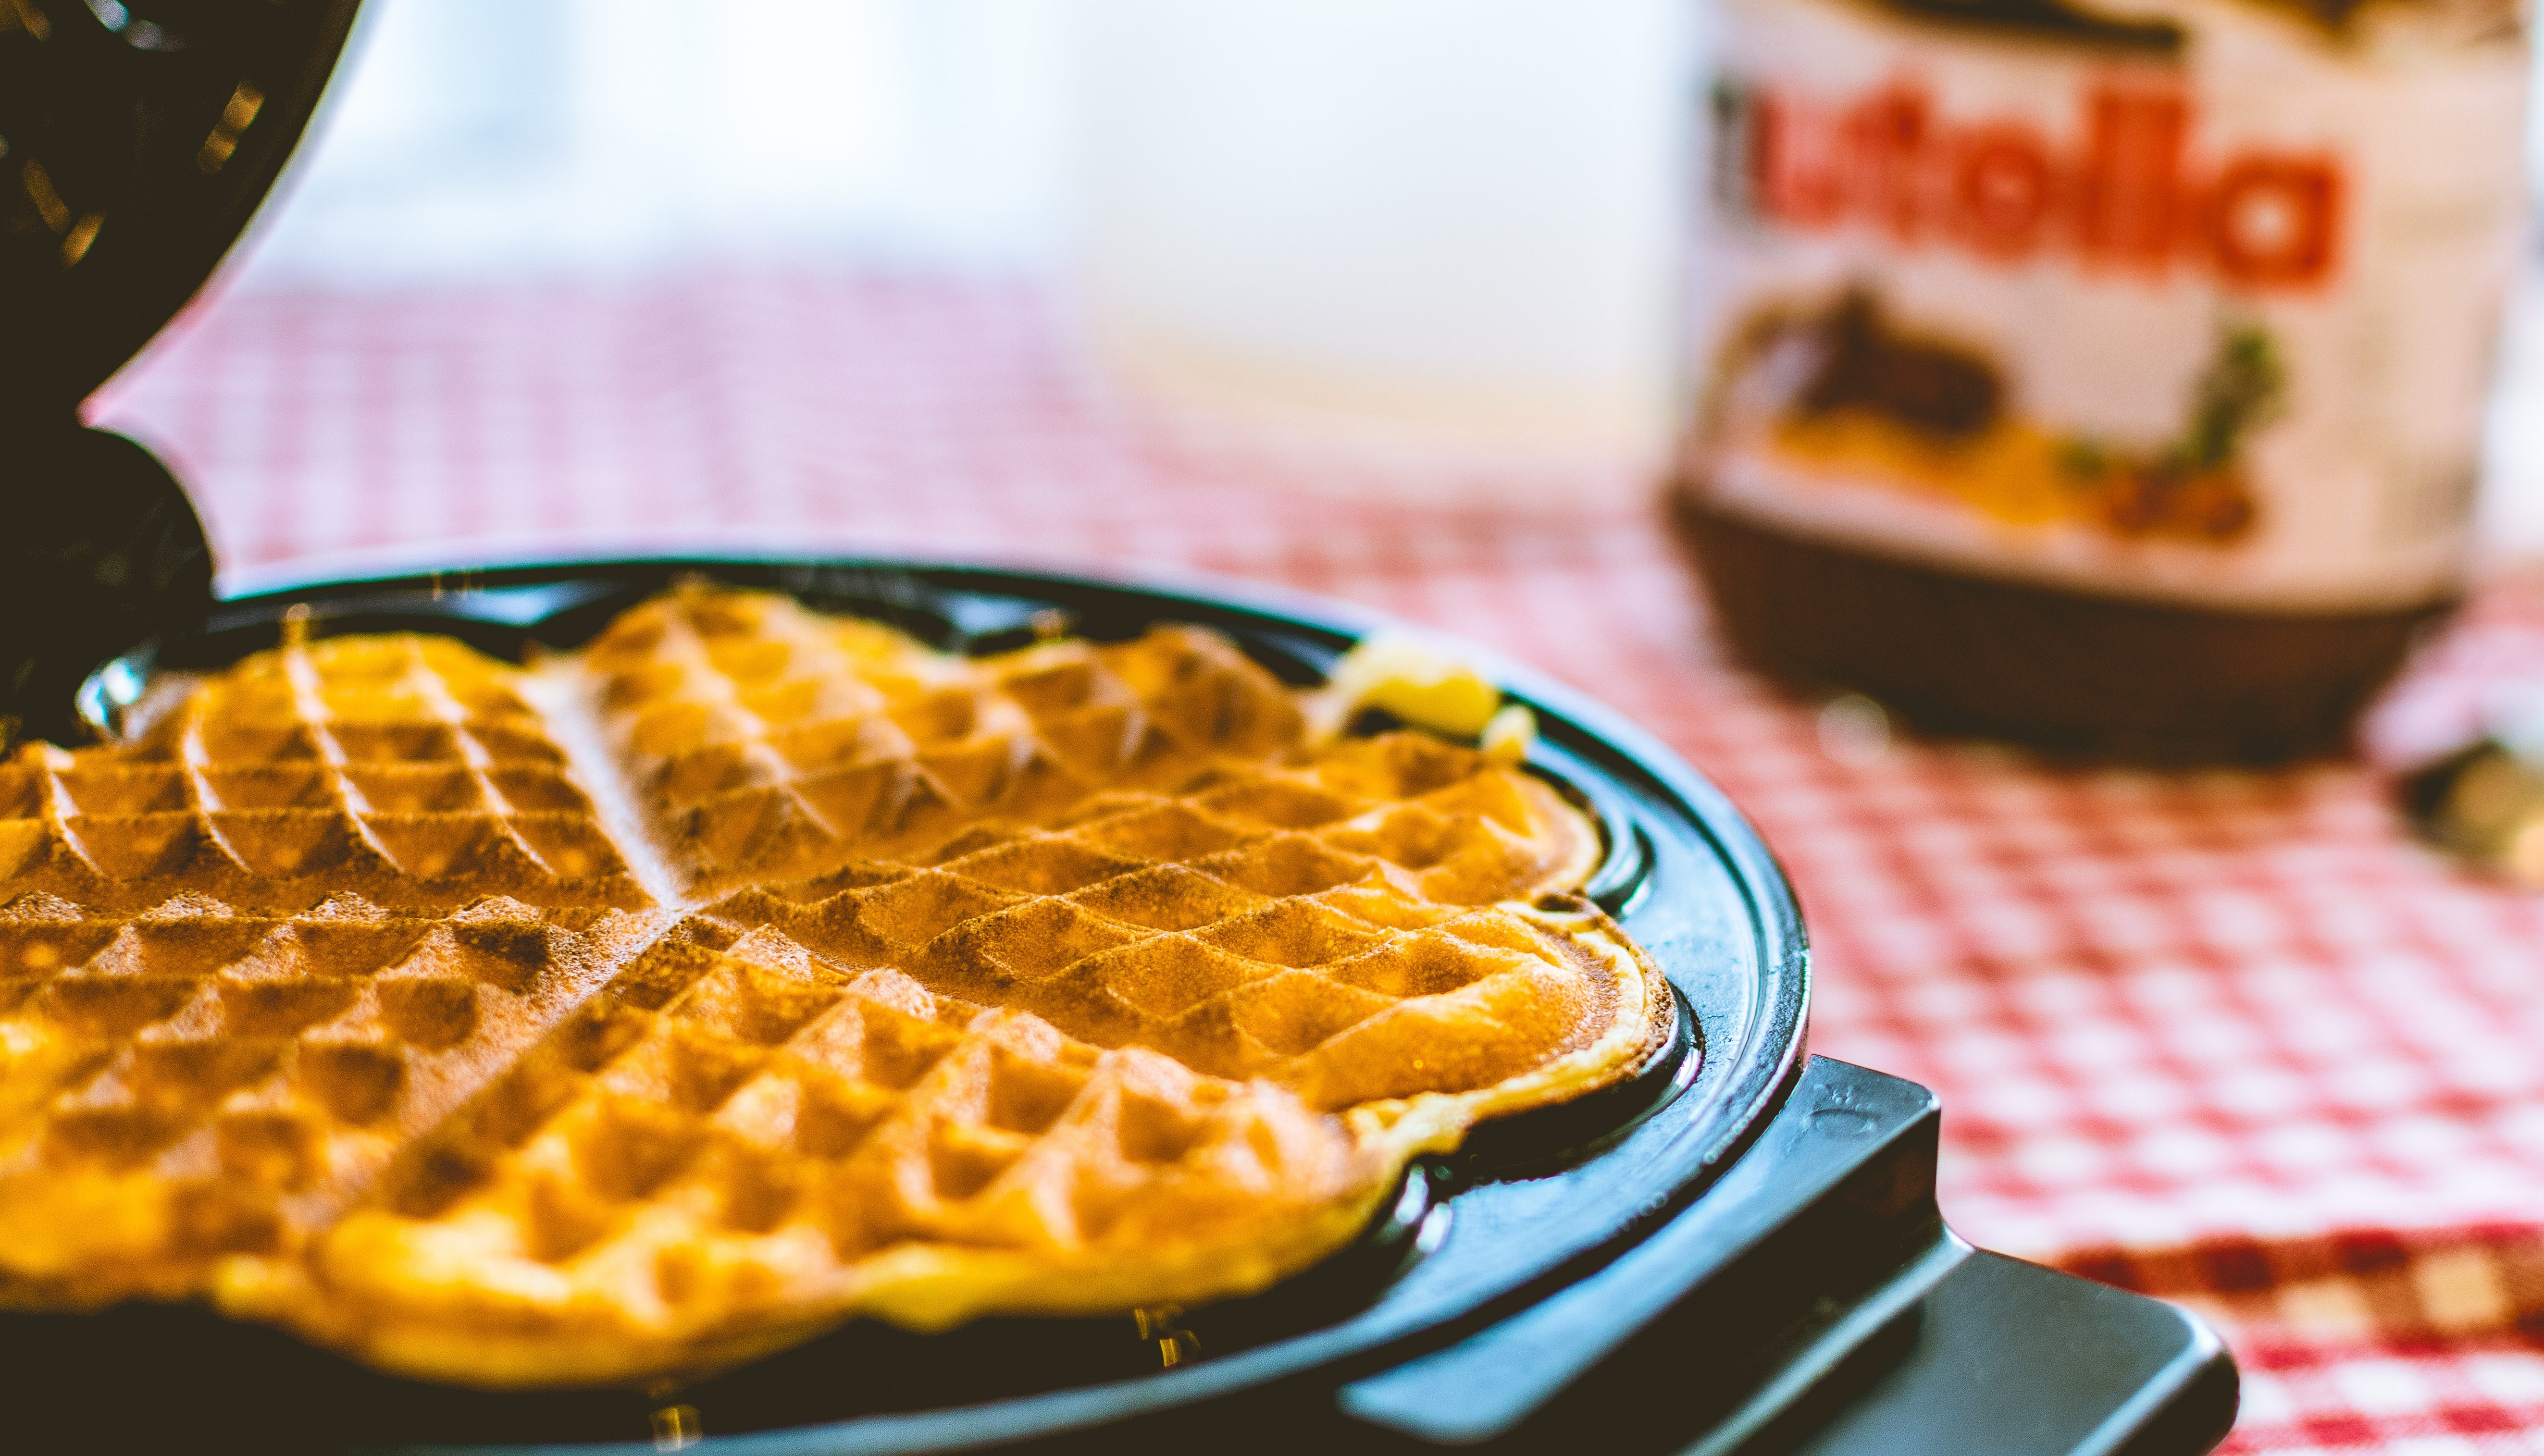 Lidl is selling a heart-shaped waffle maker for £11.99 – just in time for Valentine's Day